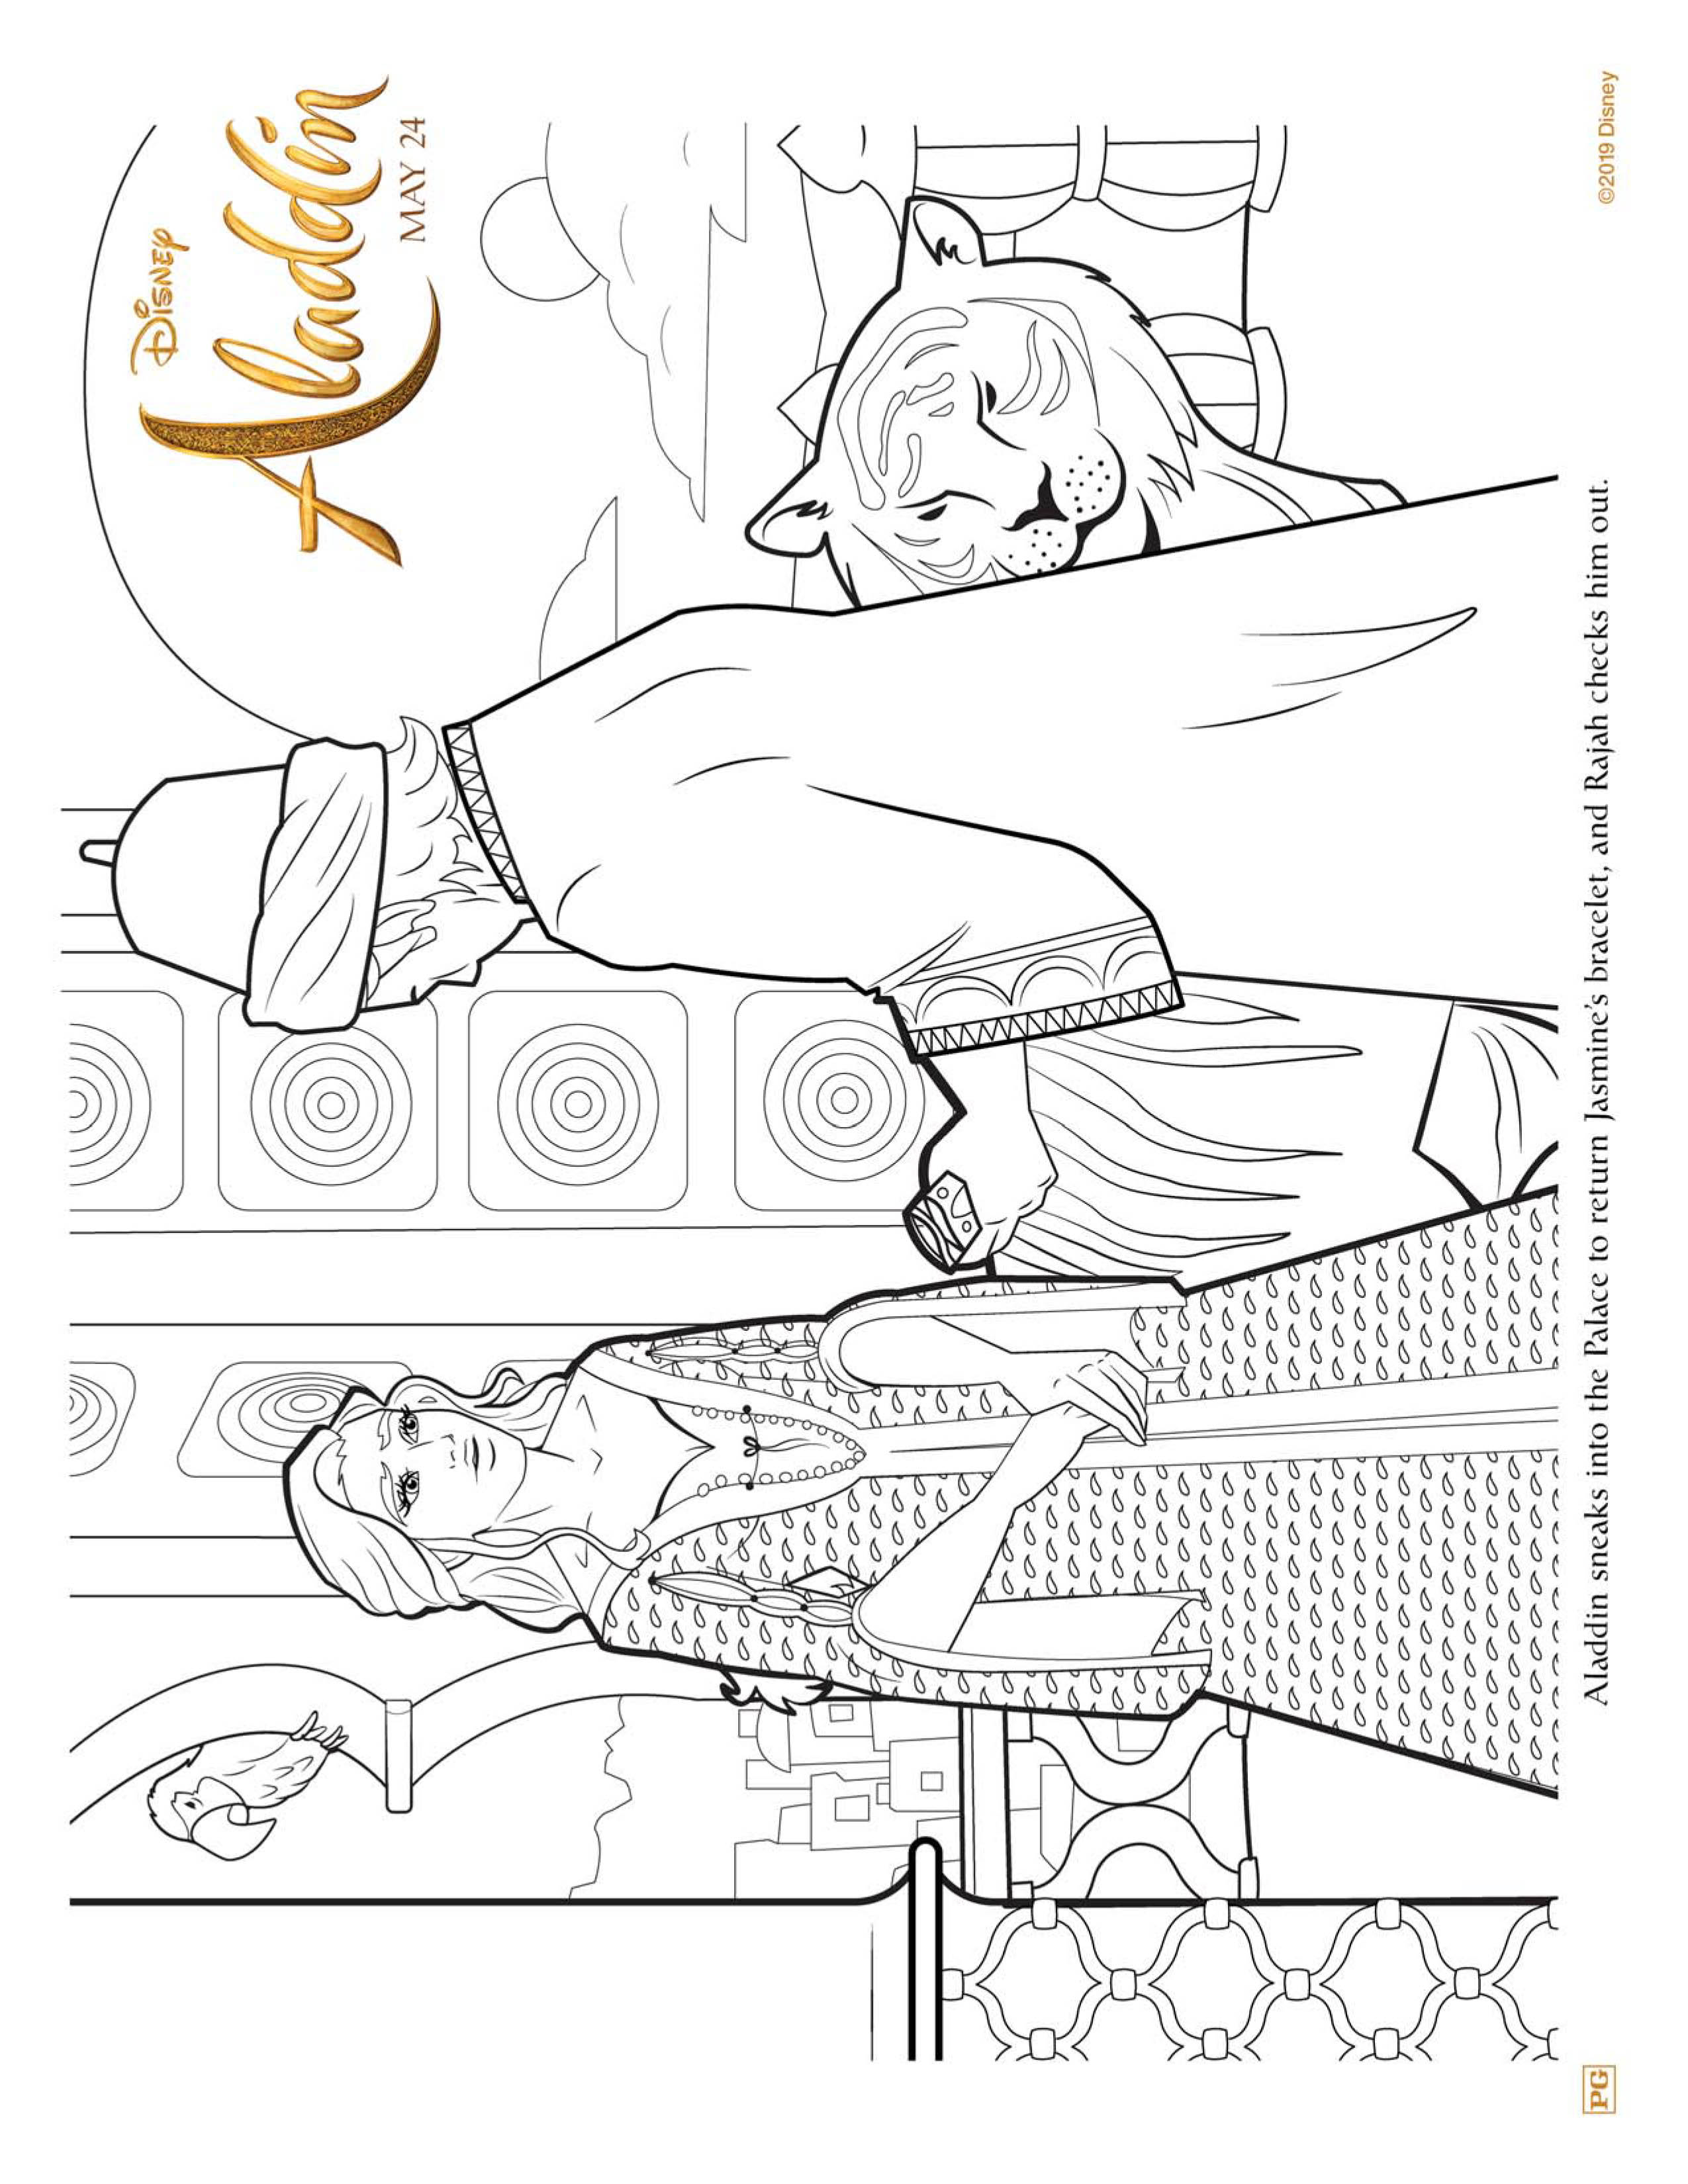 Aladdin Movie Coloring Pages - GetColoringPages.com | 3300x2550